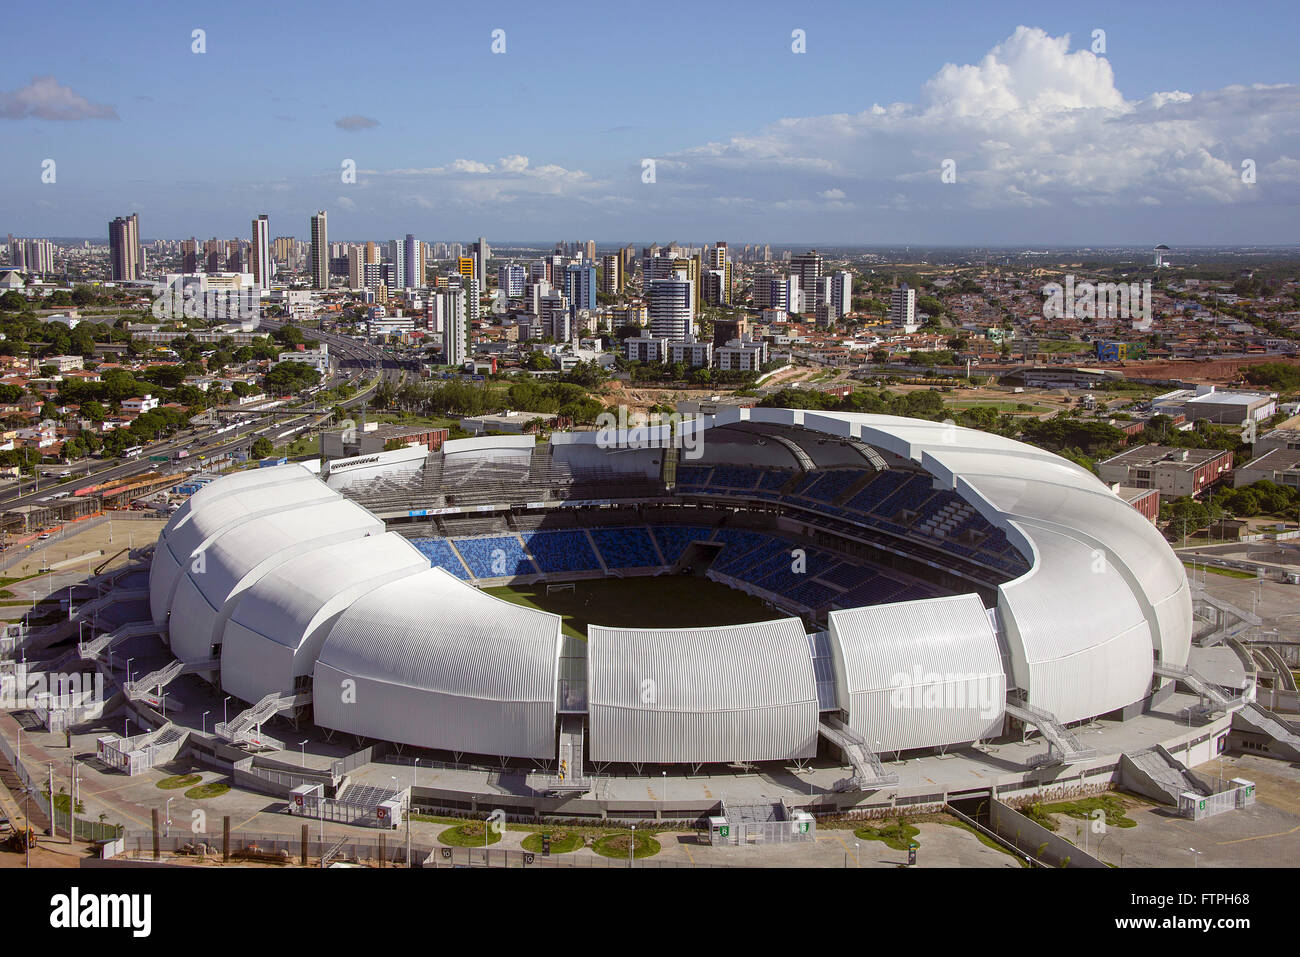 Top view of the Arena das Dunas - stadium built to host the 2014 FIFA World Cup - Stock Image